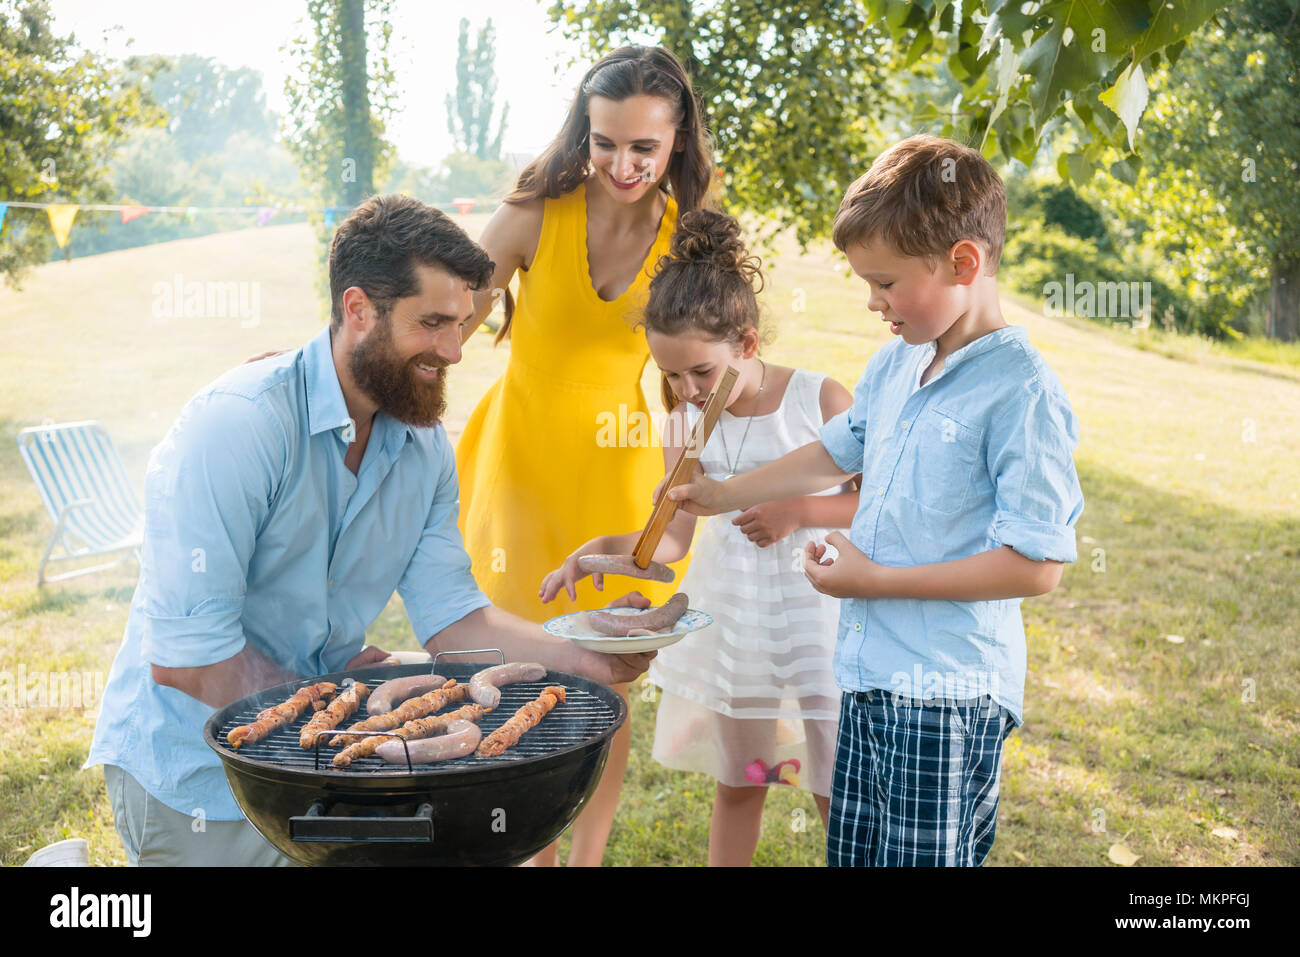 Dedicated father helping son to use wooden tongs during family picnic - Stock Image